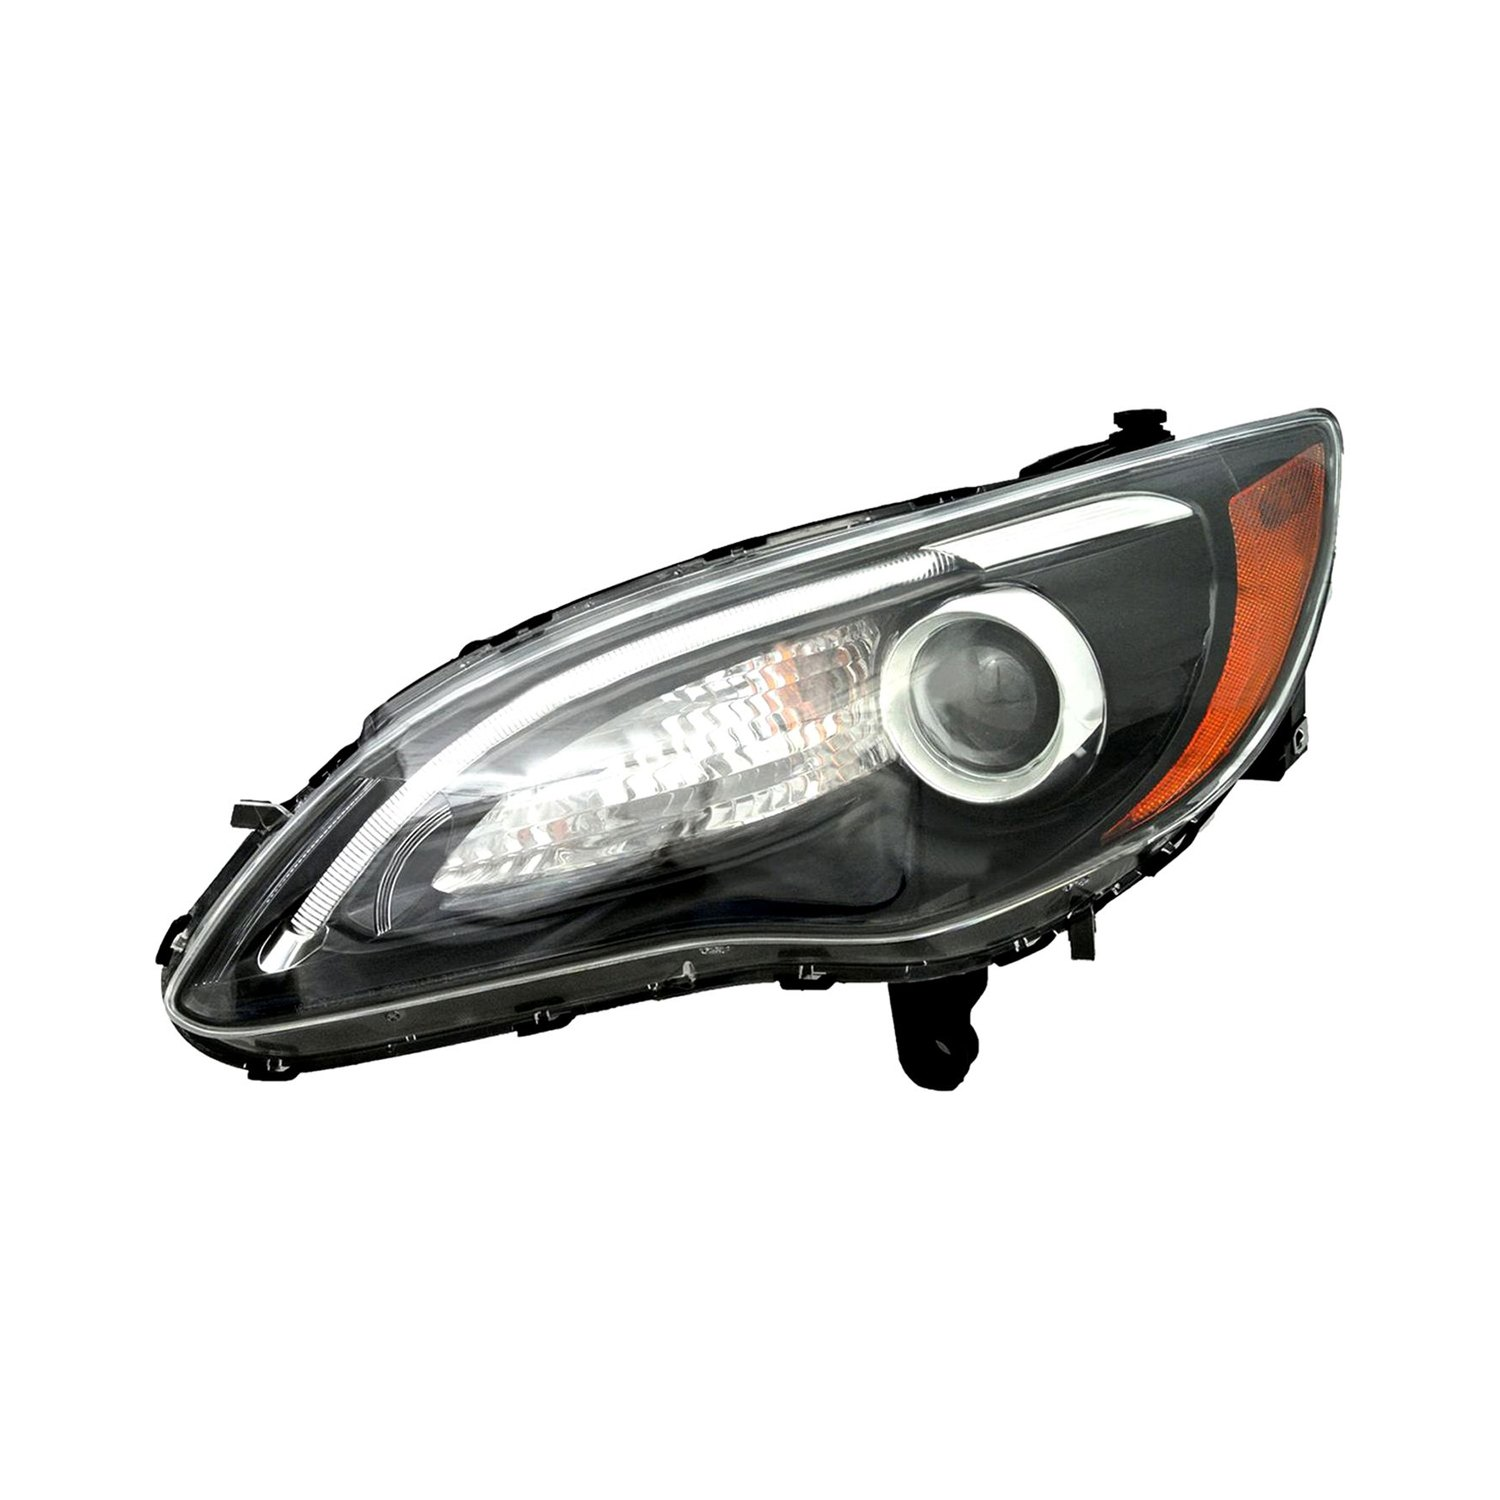 s chrysler edition headlight auto new york show heads special to